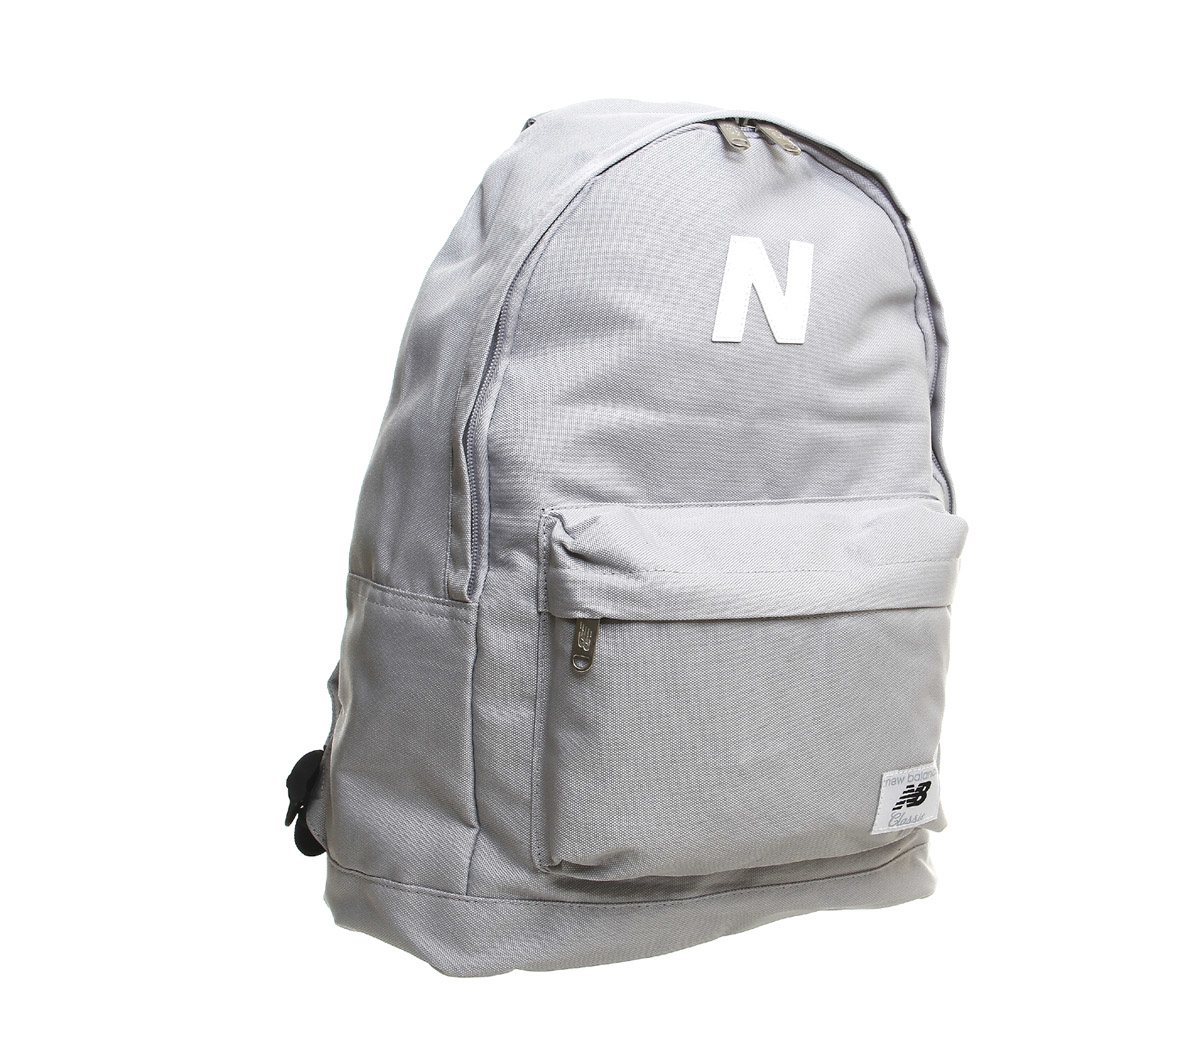 0176a32ef3b1 New Balance Mellow Backpack In Stock- Fenix Toulouse Handball